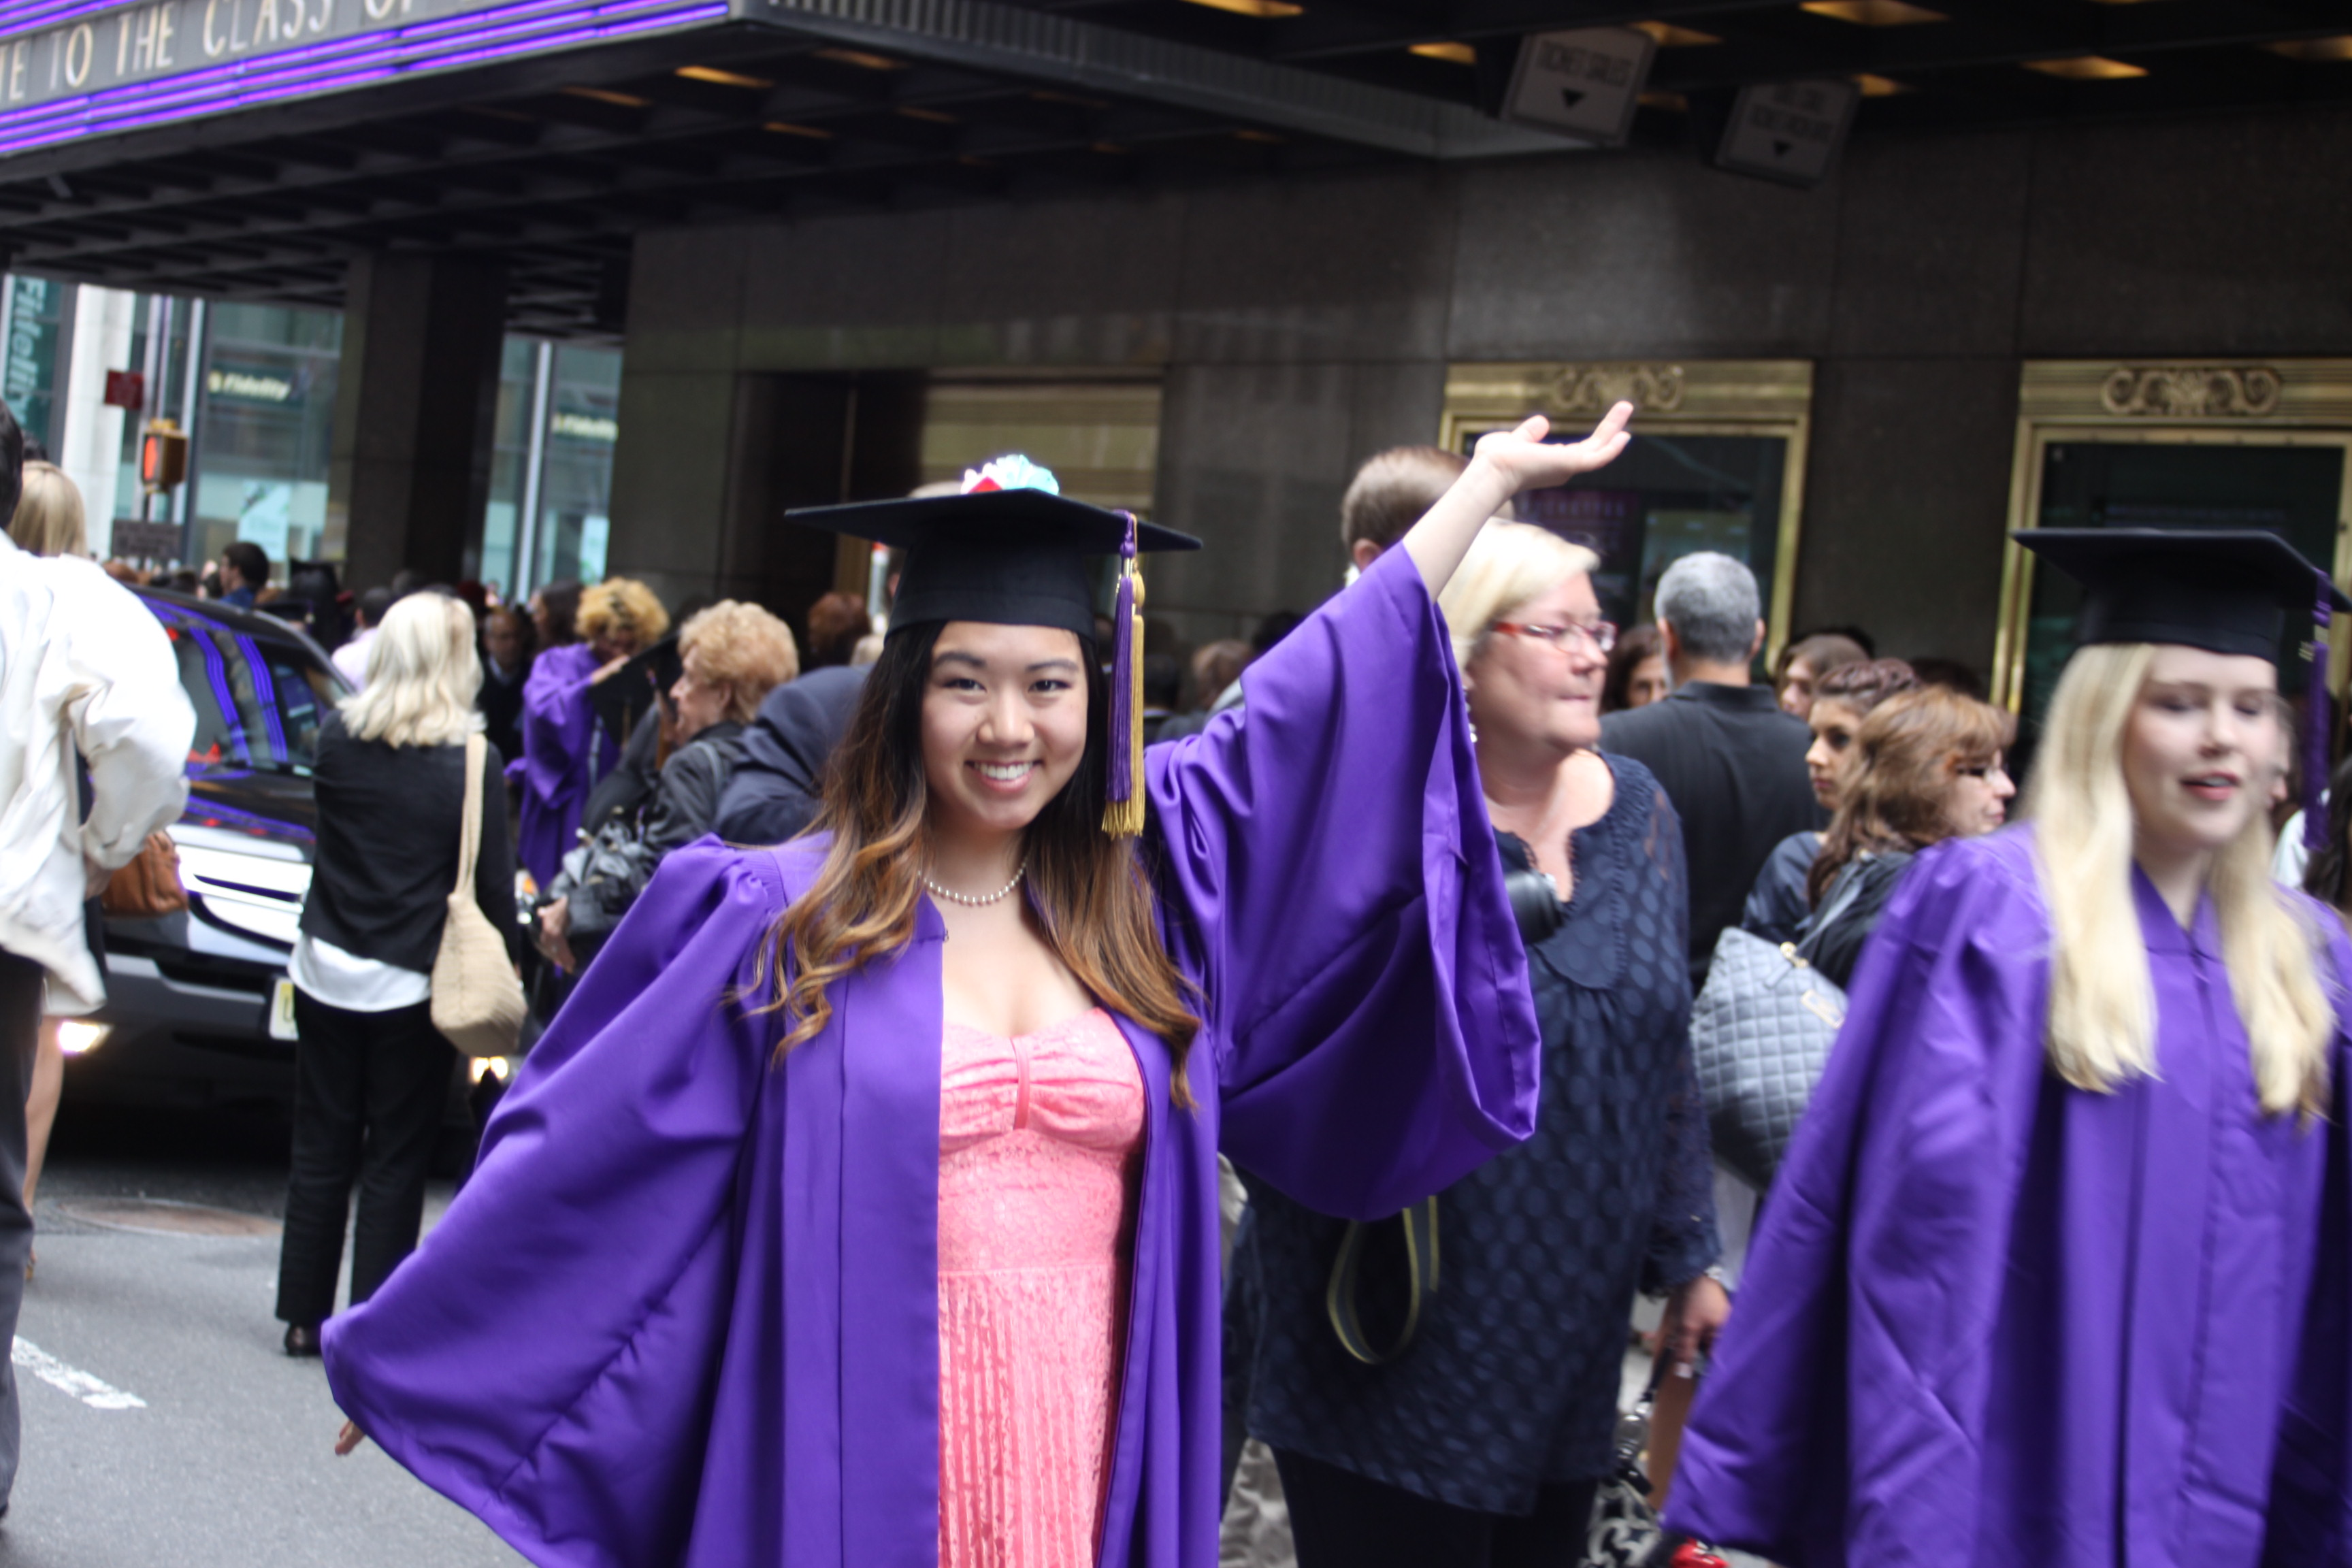 Nyu Tisch School Of The Arts Location Meet Tricia Fukuhara A Recent Graduate From Nyu With An